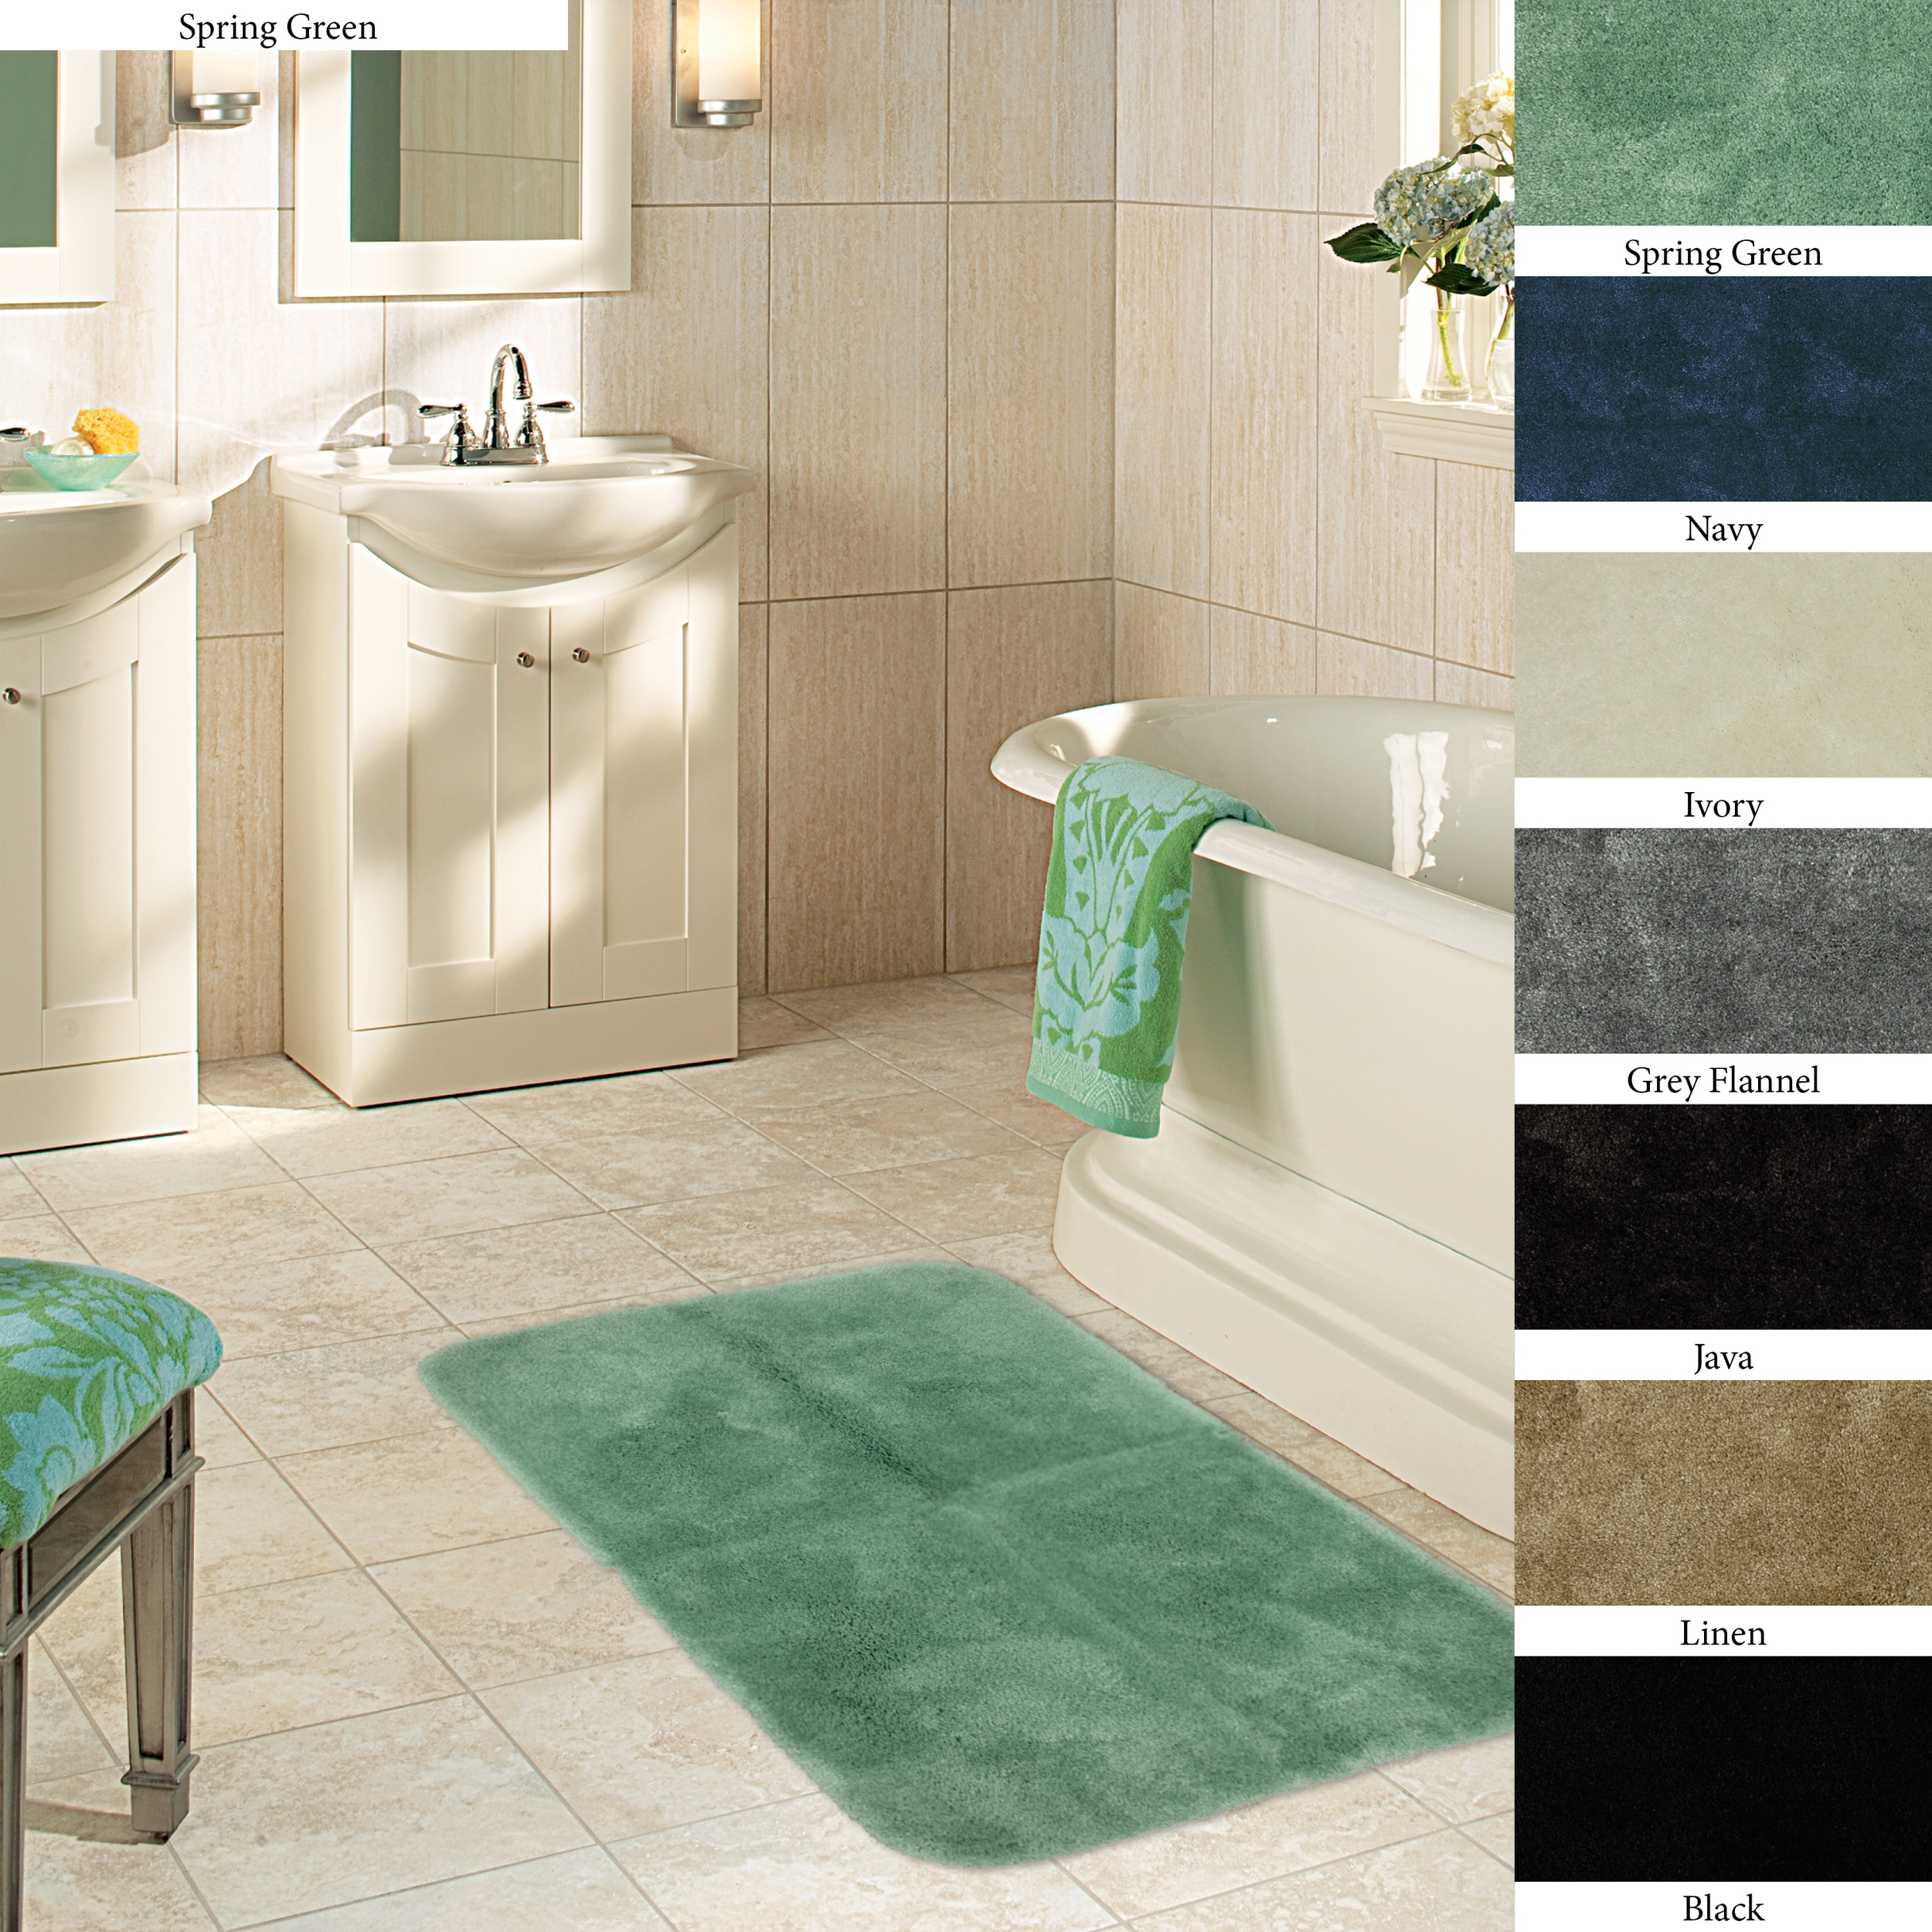 Plush Bathroom Rug Sets: Plush Non-skid 24 X 40-inch Bath Mat (Set Of 2